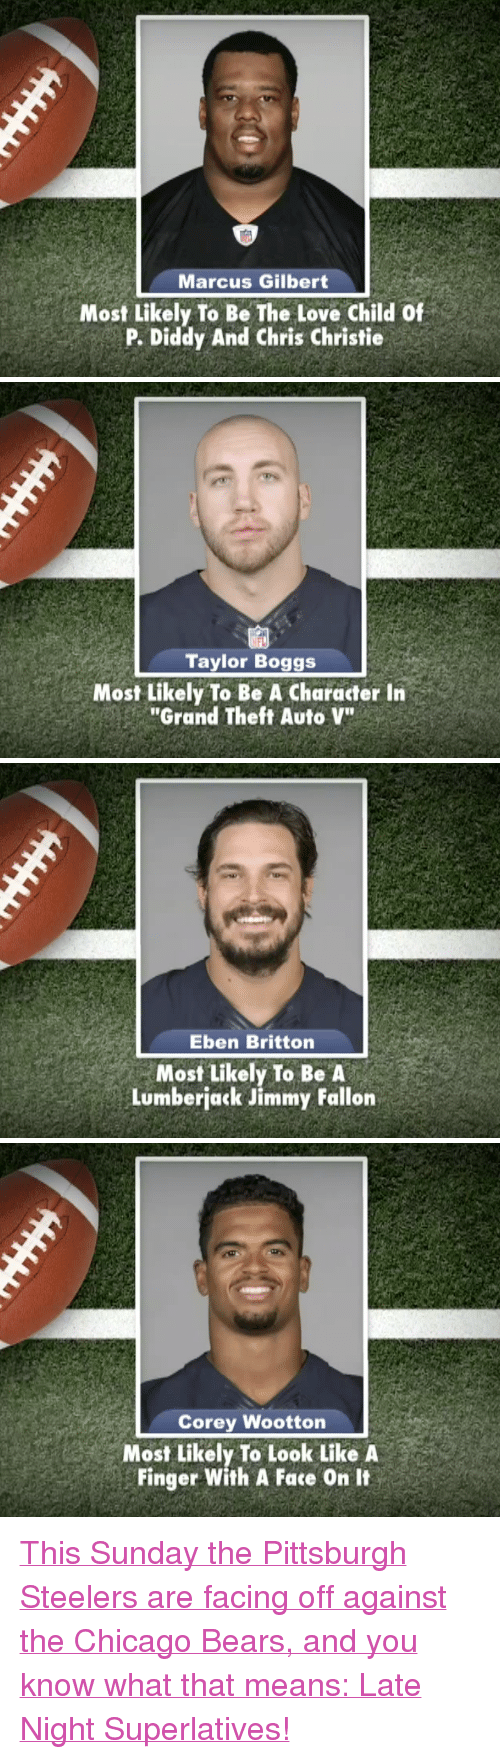 "Chicago, Chicago Bears, and Jimmy Fallon: Marcus Gilbert  Most Likely To Be The Love Child Of  P. Diddy And Chris Christie   NFL  Taylor Boggs  Most Likely To Be A Character Irn  ""Grand Theft Auto V""   Eben Britton  Most Likely To Be A  Lumberjack Jimmy Fallon   Corey Wootton  Most Likely To Look Like A  Finger With A Face On It <p><a href=""http://www.youtube.com/watch?v=joXwnG6_nL4"" target=""_blank"">This Sunday the Pittsburgh Steelers are facing off against the Chicago Bears, and you know what that means: Late Night Superlatives!</a></p>"